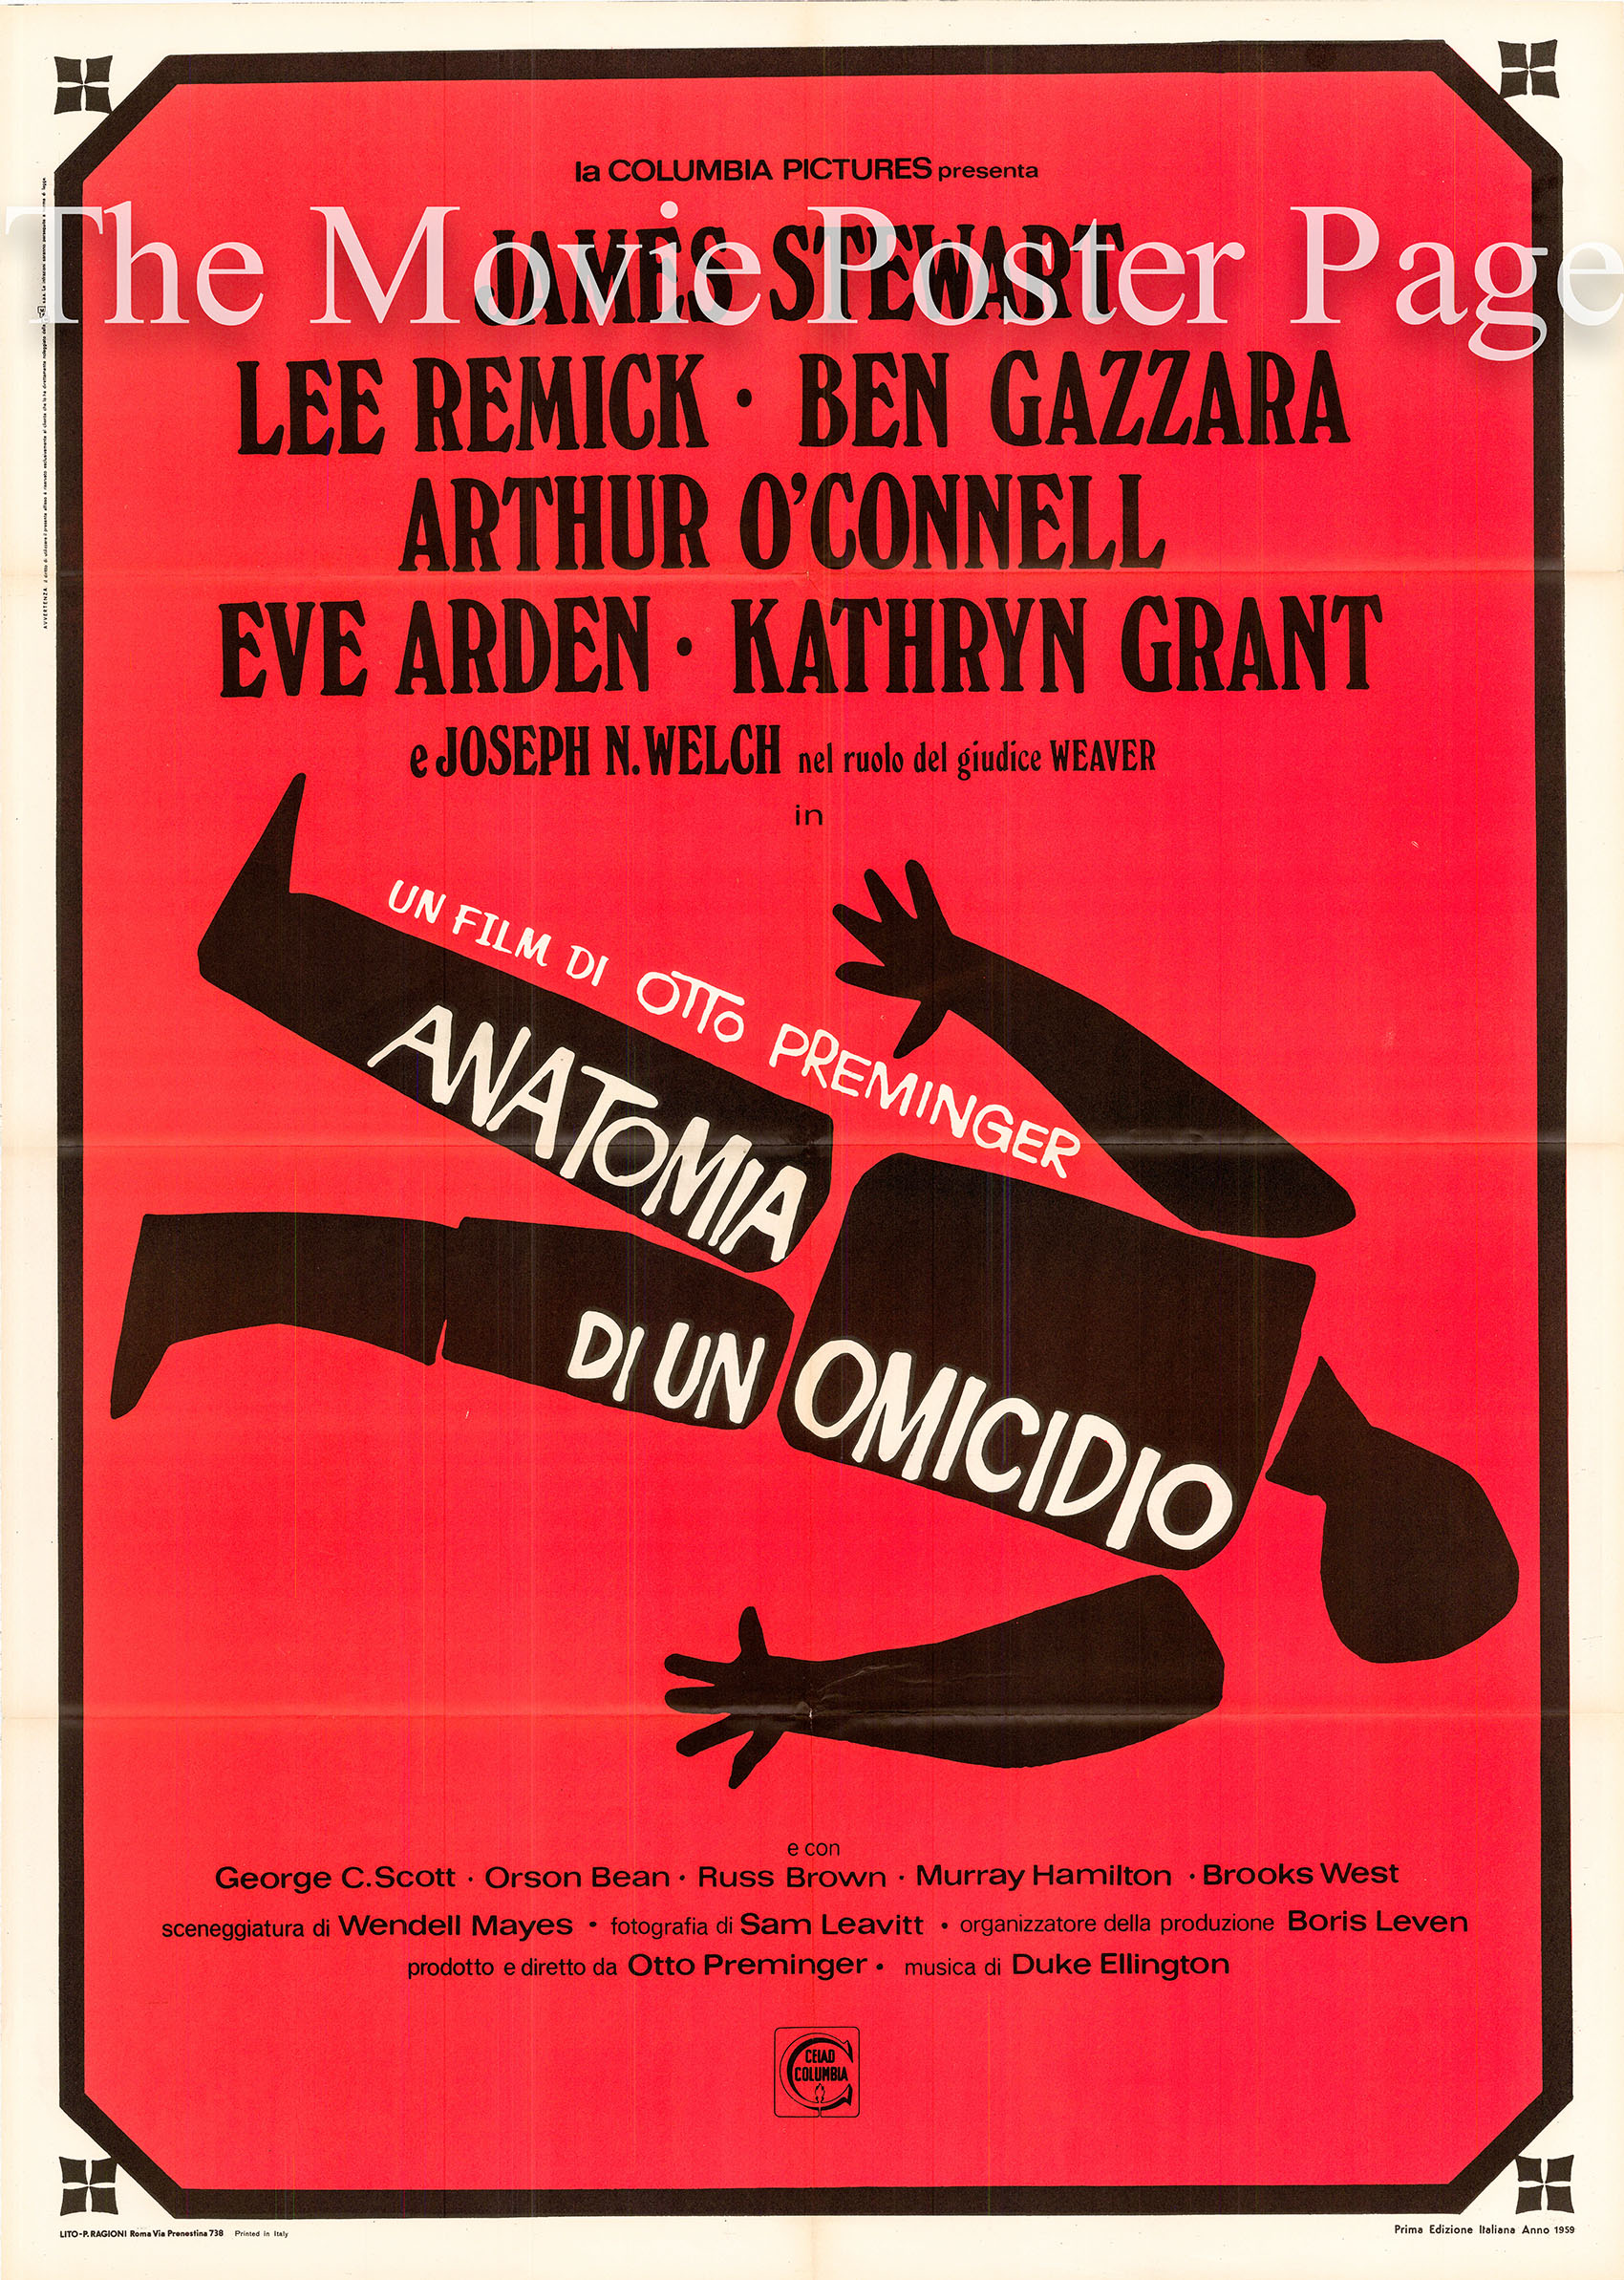 Pictured is an Italian two-sheet promotional poster for the 1959 Otto Preminger film Anatomy of a Murder starring James Stewart as Paul Biegler.